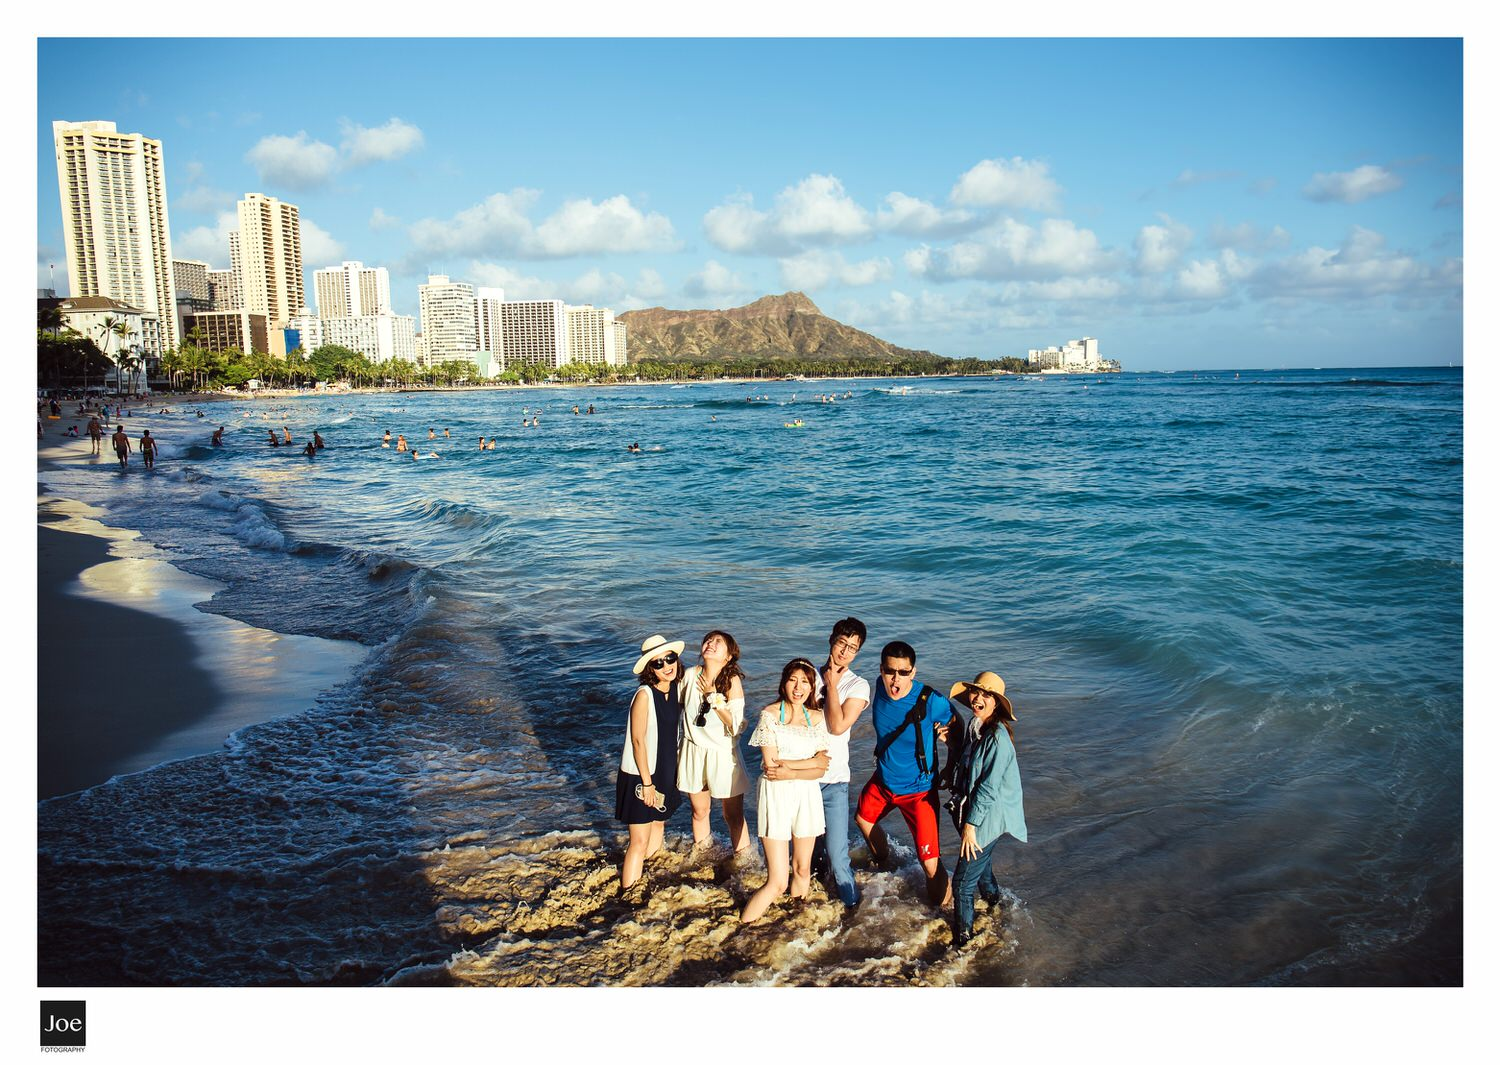 128-waikiki-beach-hawaii-pre-wedding-tiffany-tony-joe-fotography.jpg